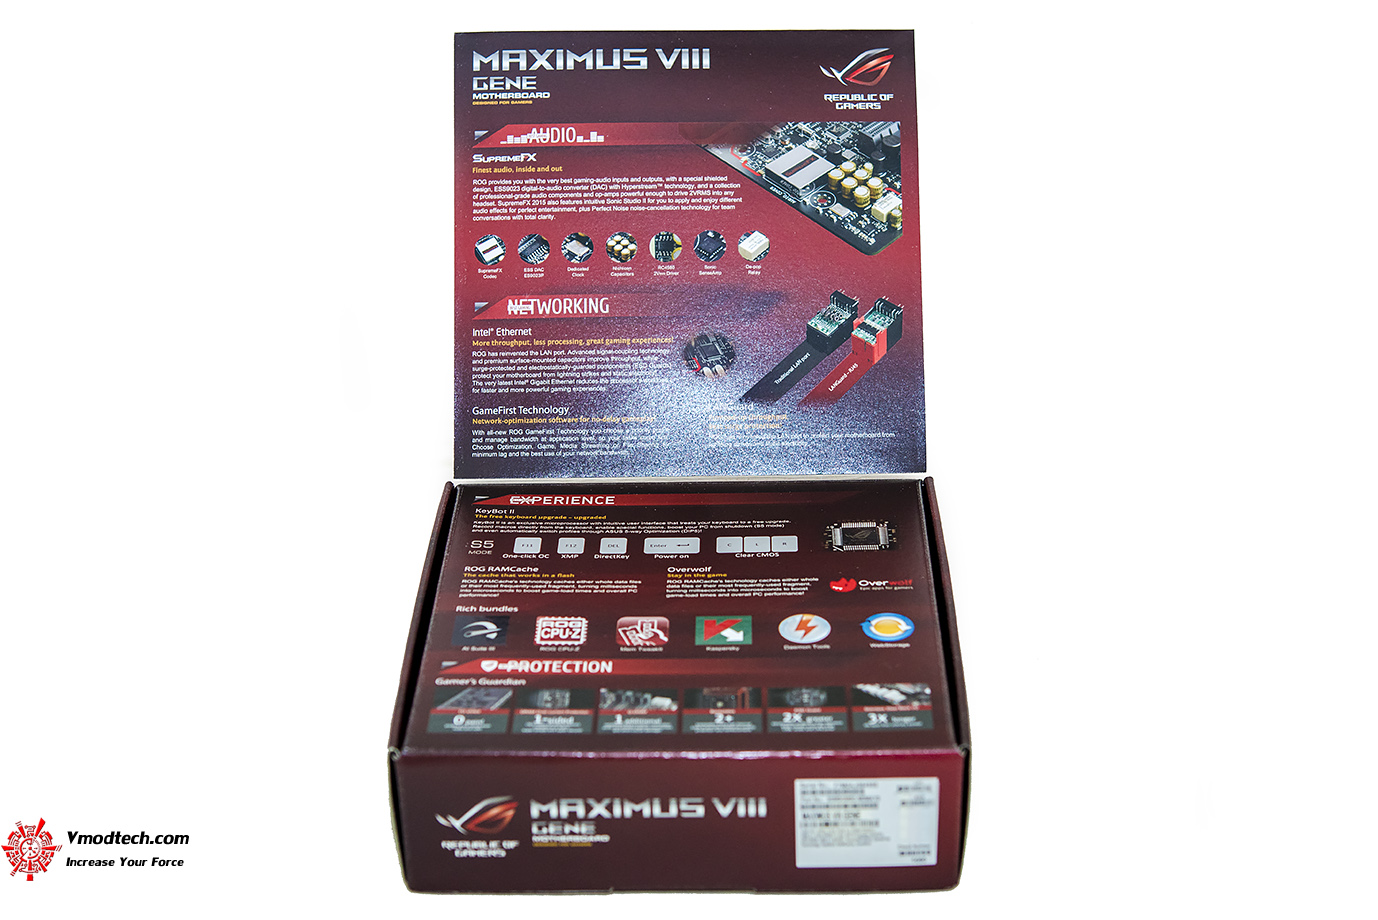 dsc 9022 ASUS ROG MAXIMUS VIII GENE Motherboard Review